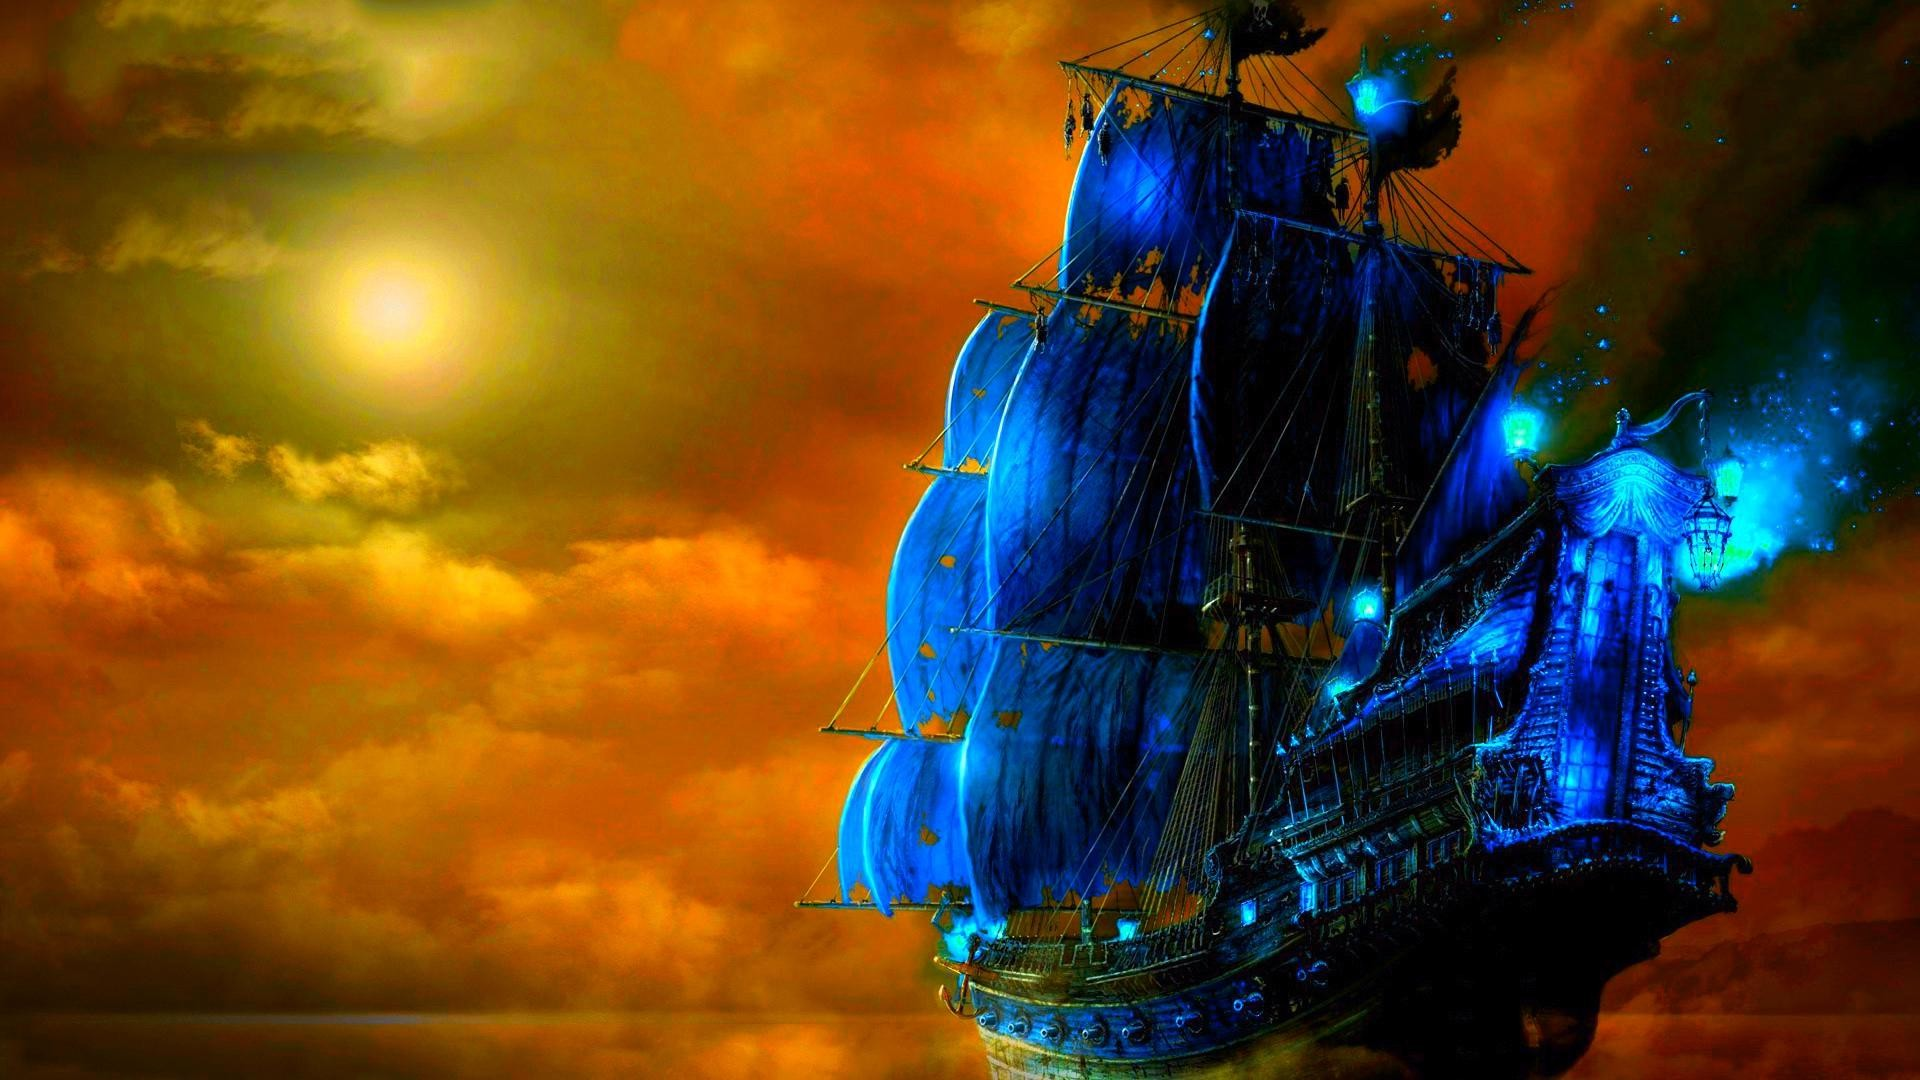 Pirate Ship Wallpaper ·① Download Free High Resolution